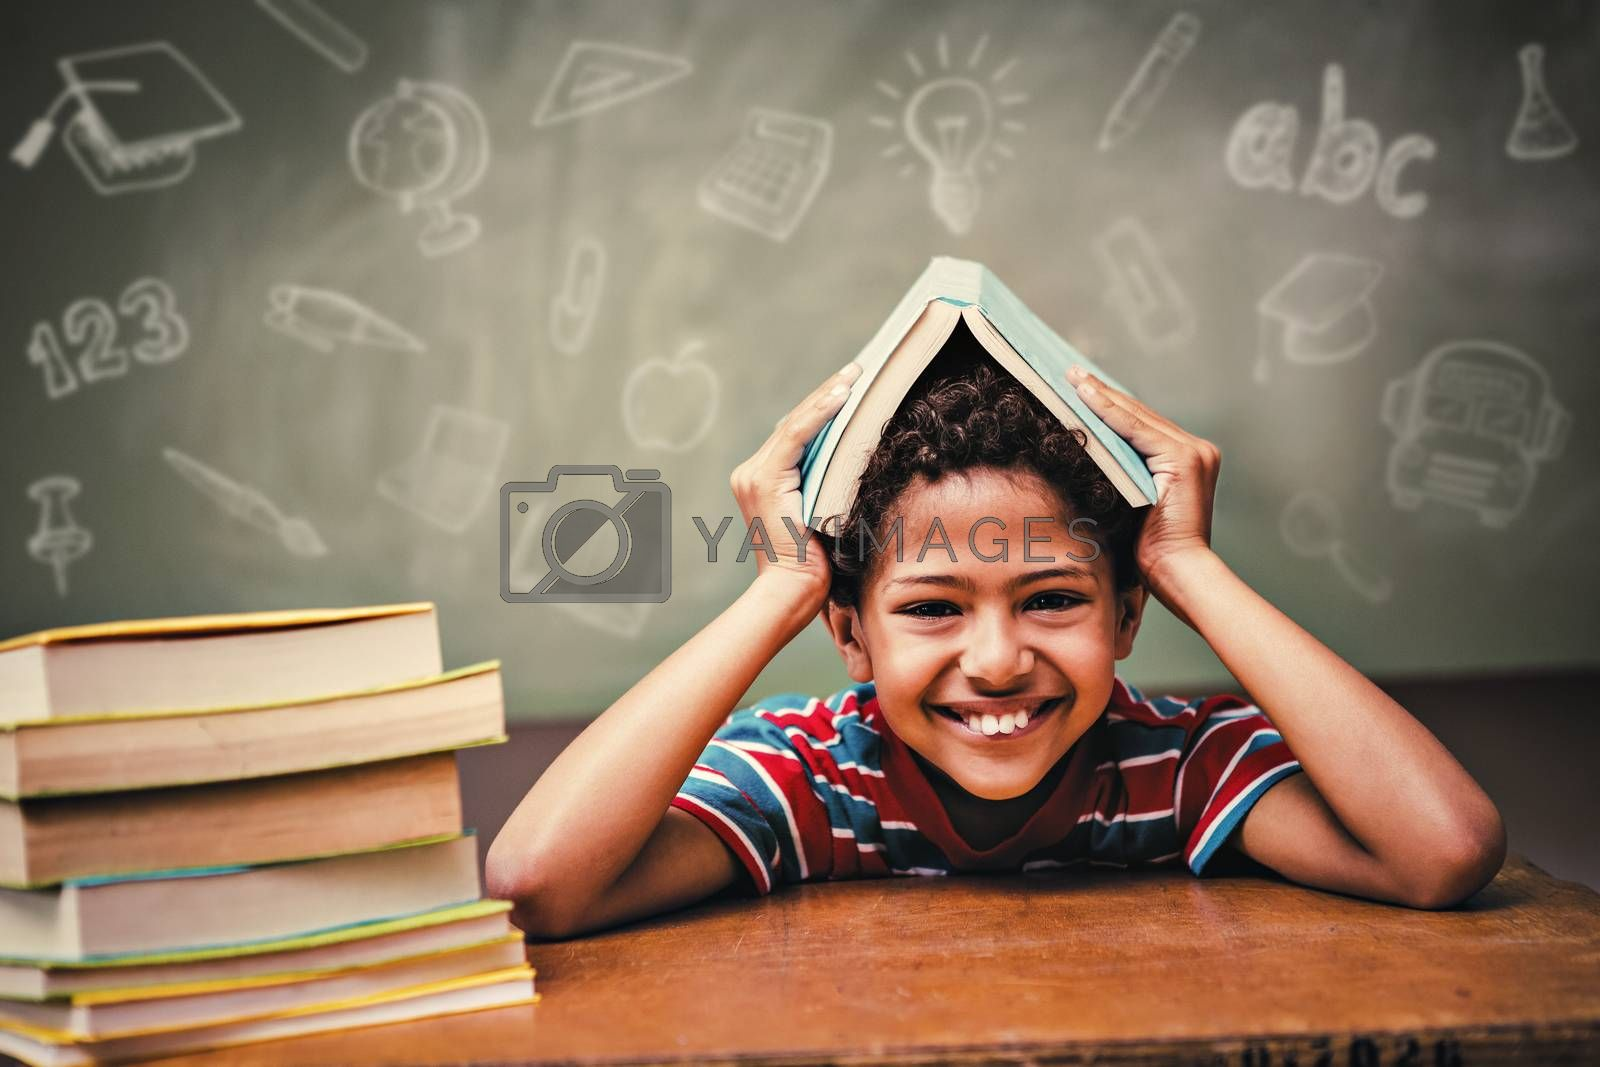 Education doodles against little boy holding book over head in classroom